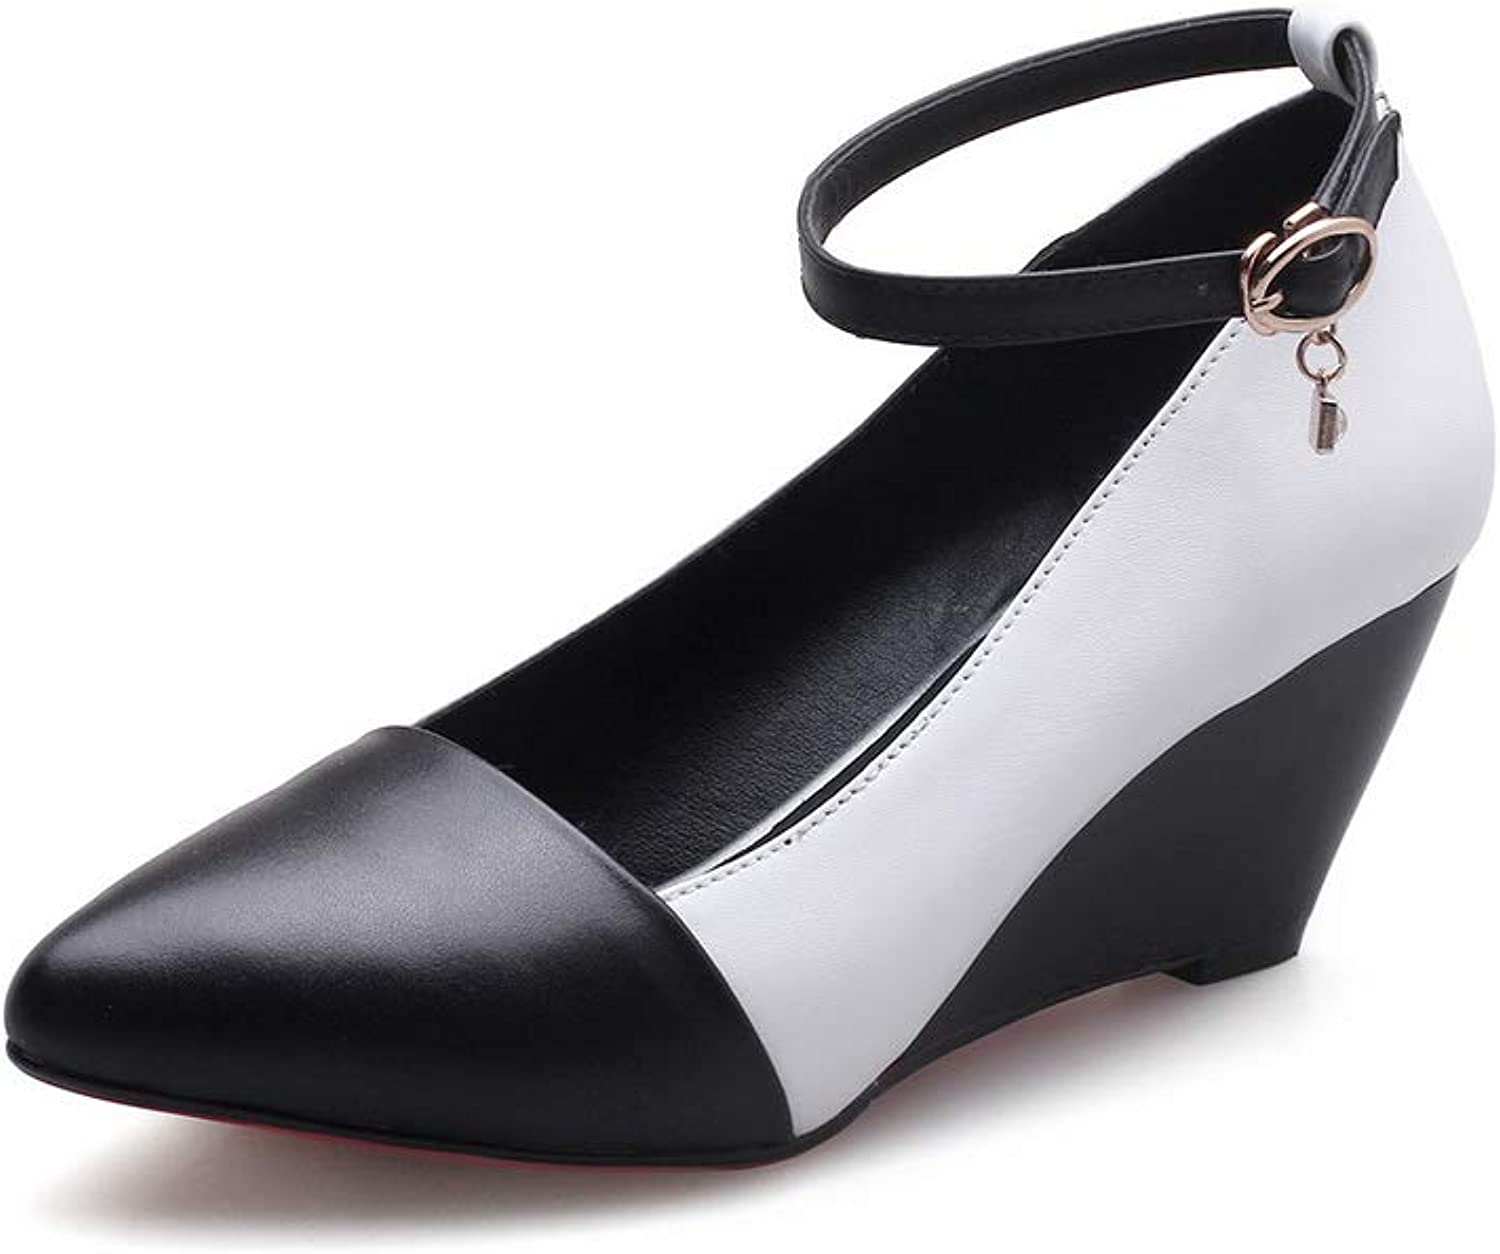 AN Womens Wedges Pointed-Toe Buckle Cow Leather Pumps shoes DGU00870